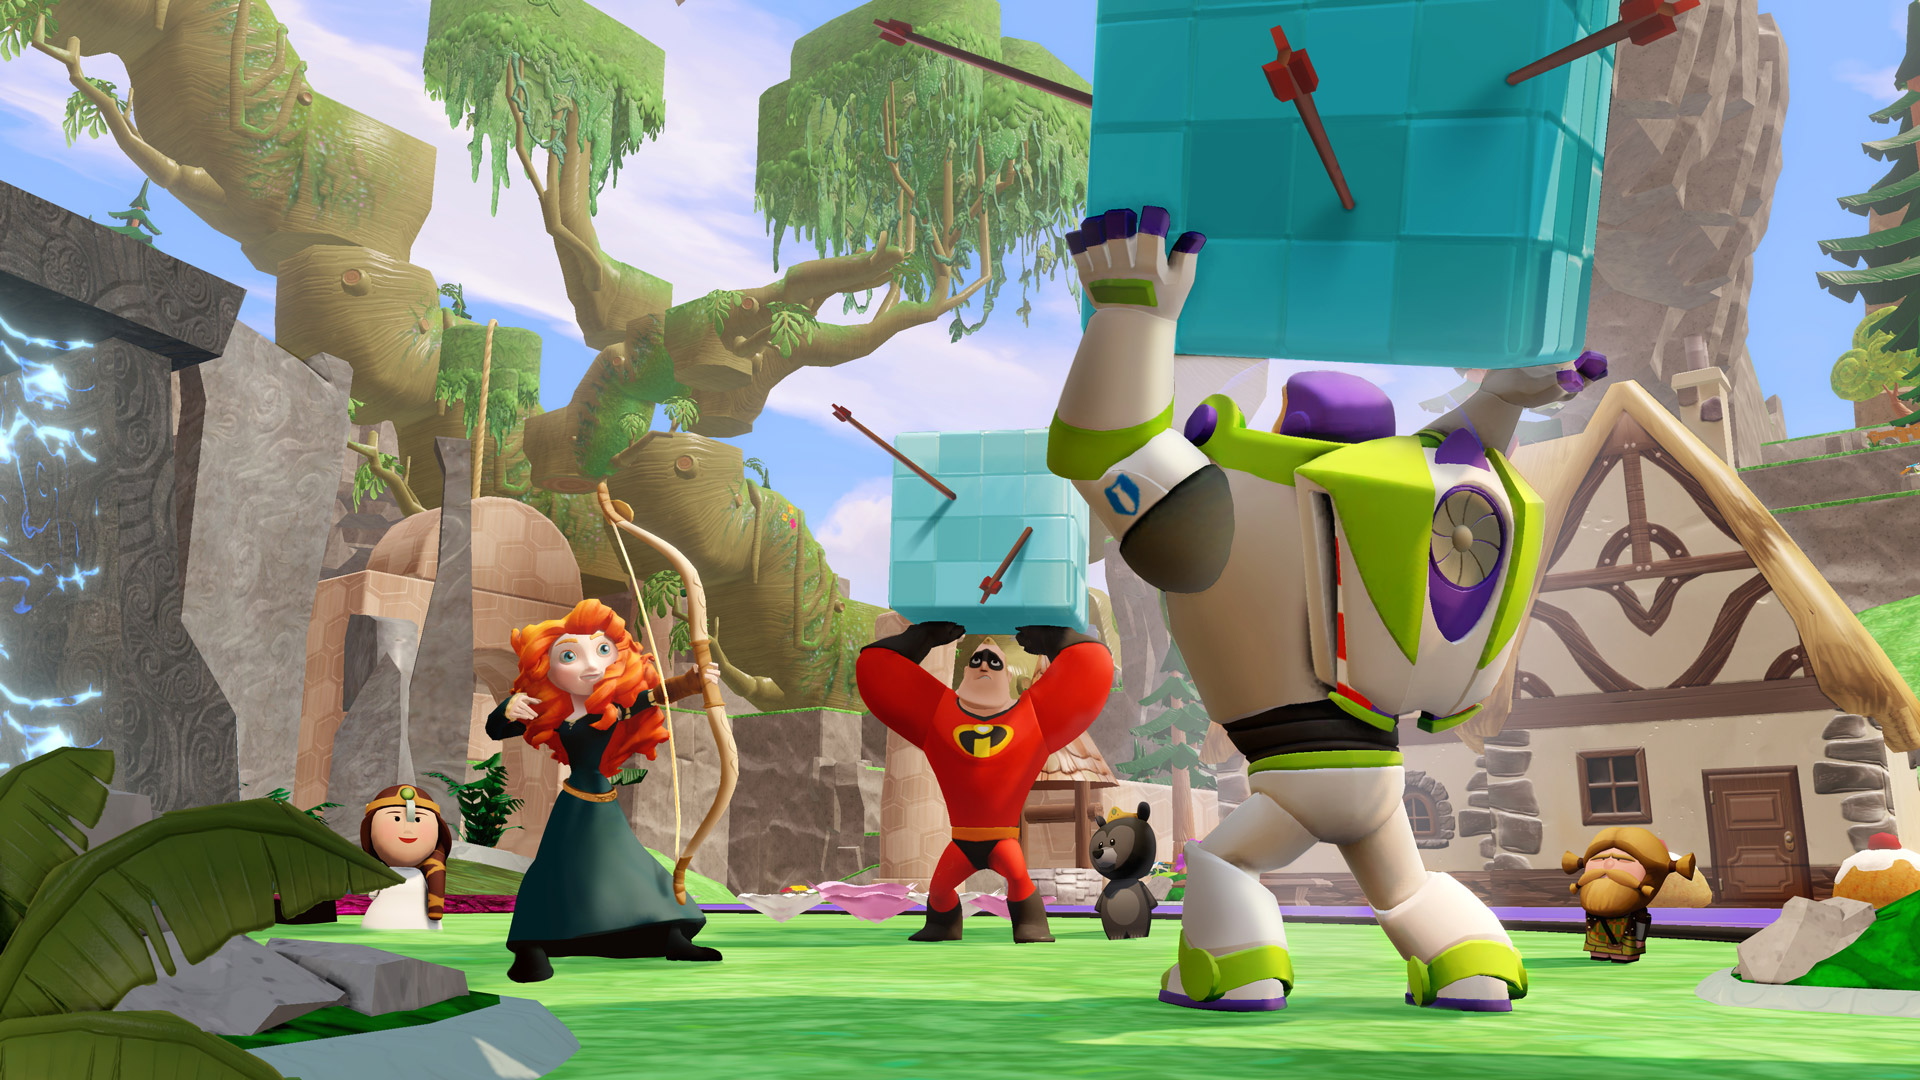 Disney Infinity is a fun game for all ages and is available for a number of gaming systems. The g...